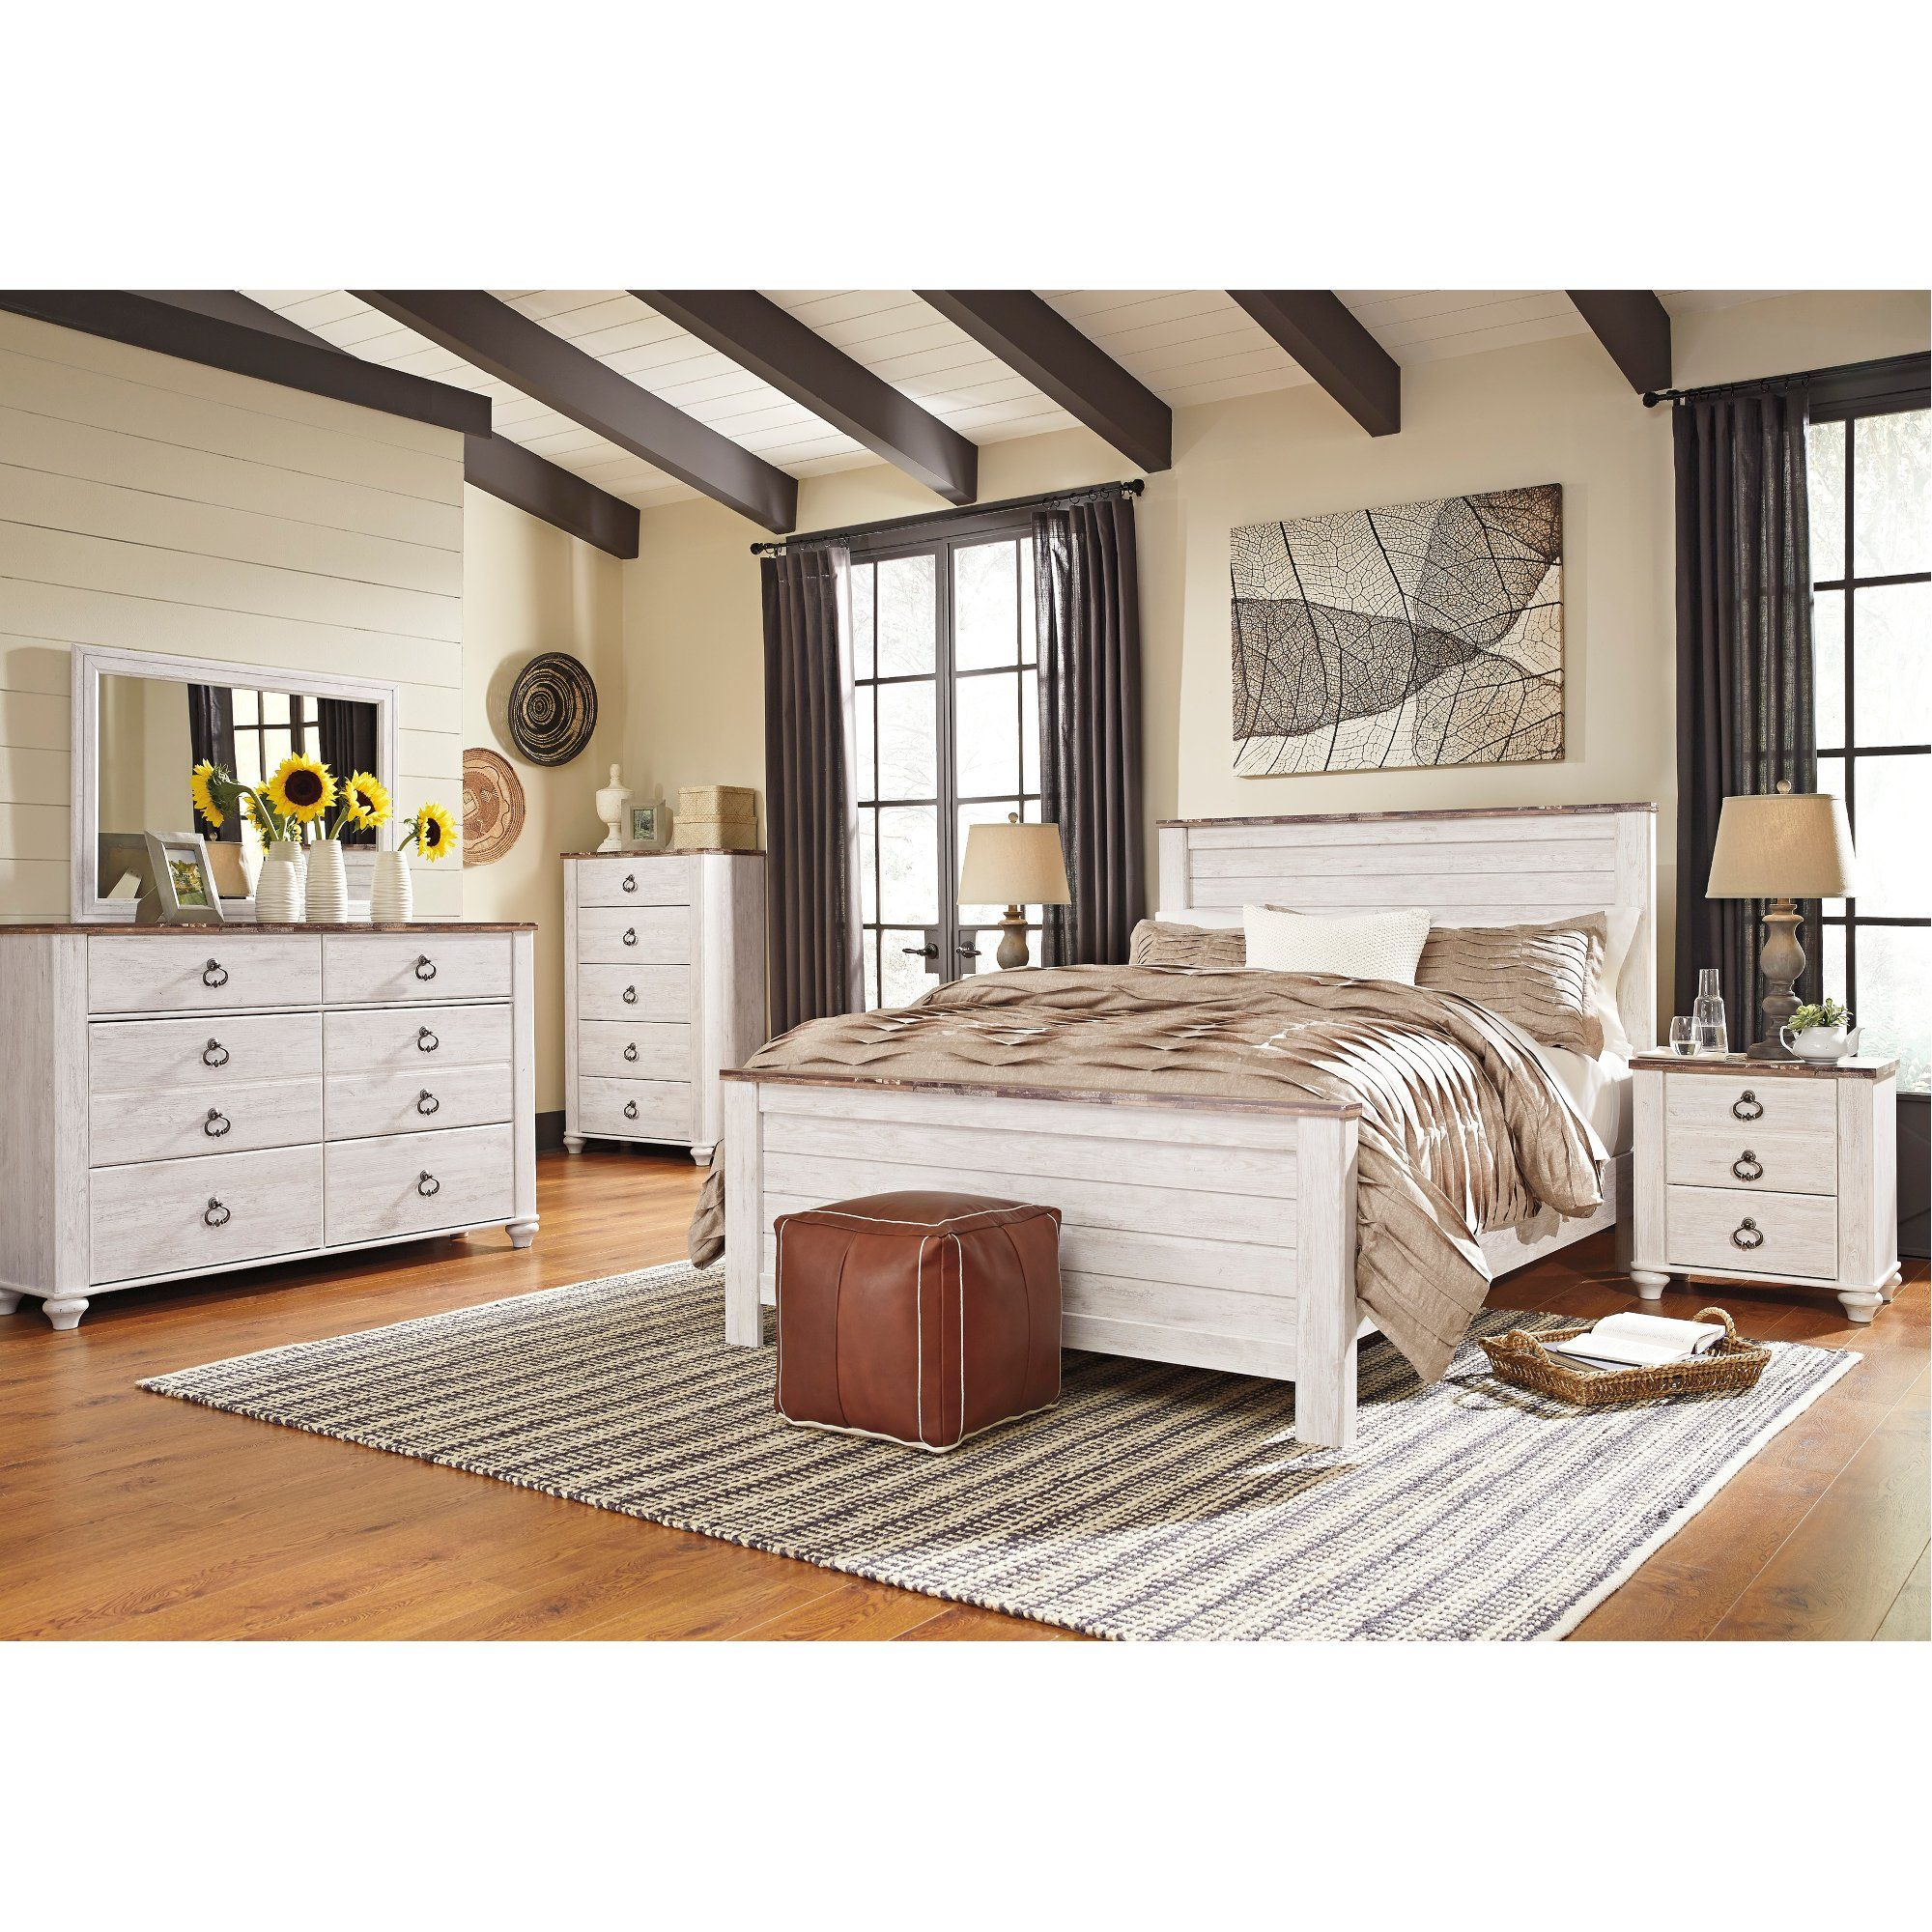 Classic Rustic Whitewash 4 Piece Queen Bedroom Set Millhaven Bedroom Set Bedroom Sets Queen Bedroom Furniture Sets